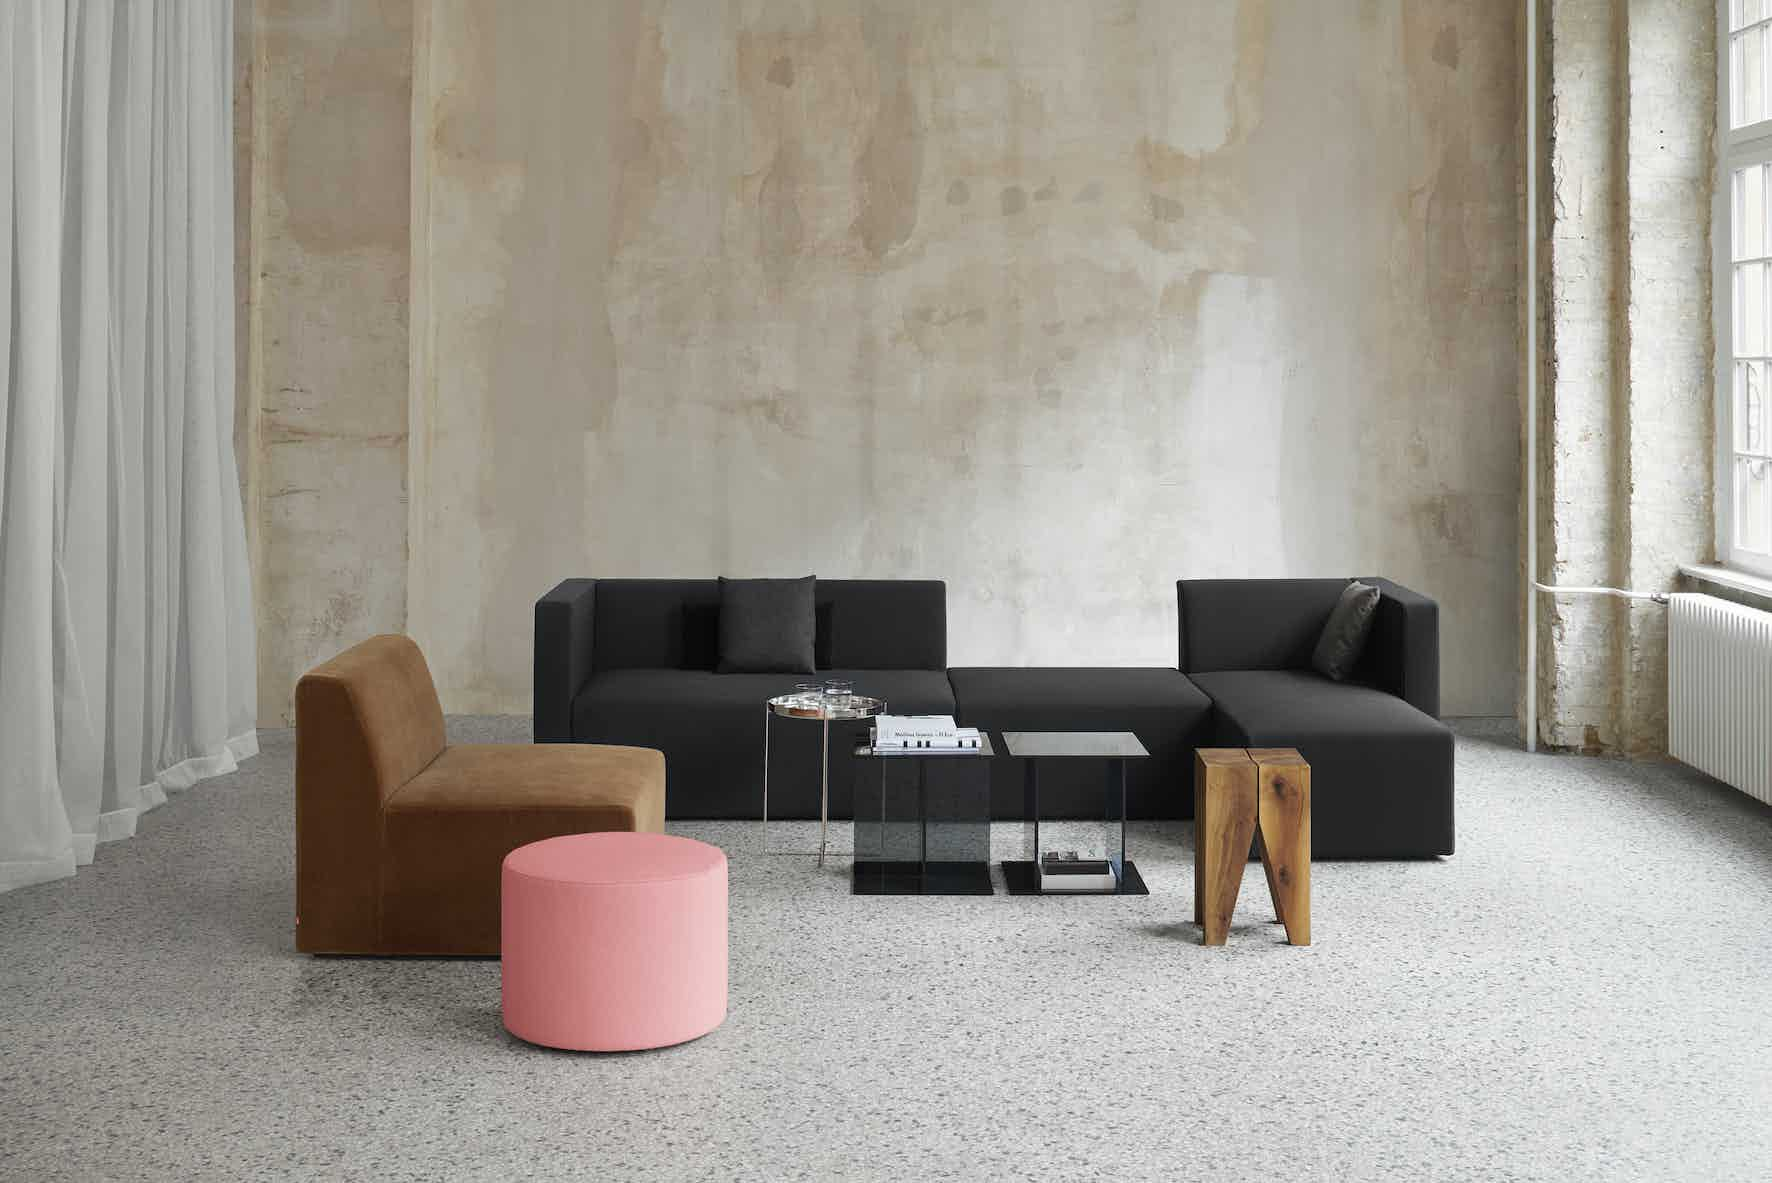 E15 furniture black kerman institu haute living